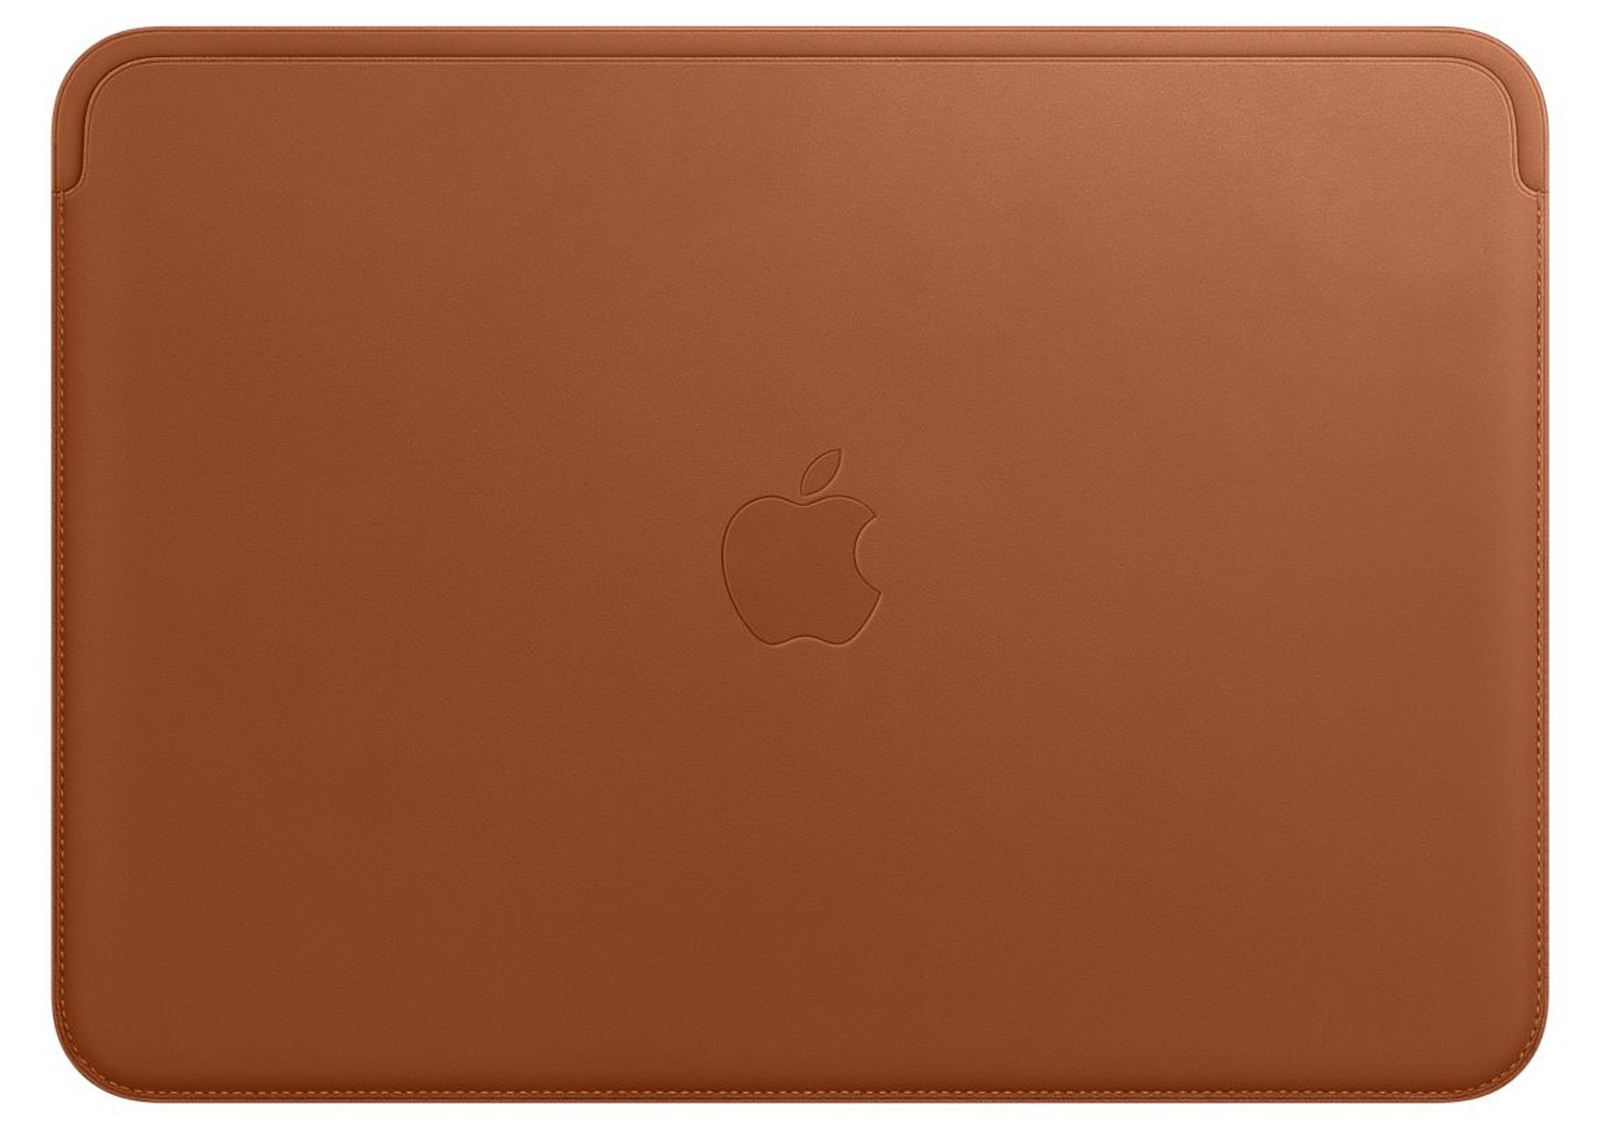 Apple se saca de la manga una funda de piel para los MacBooks